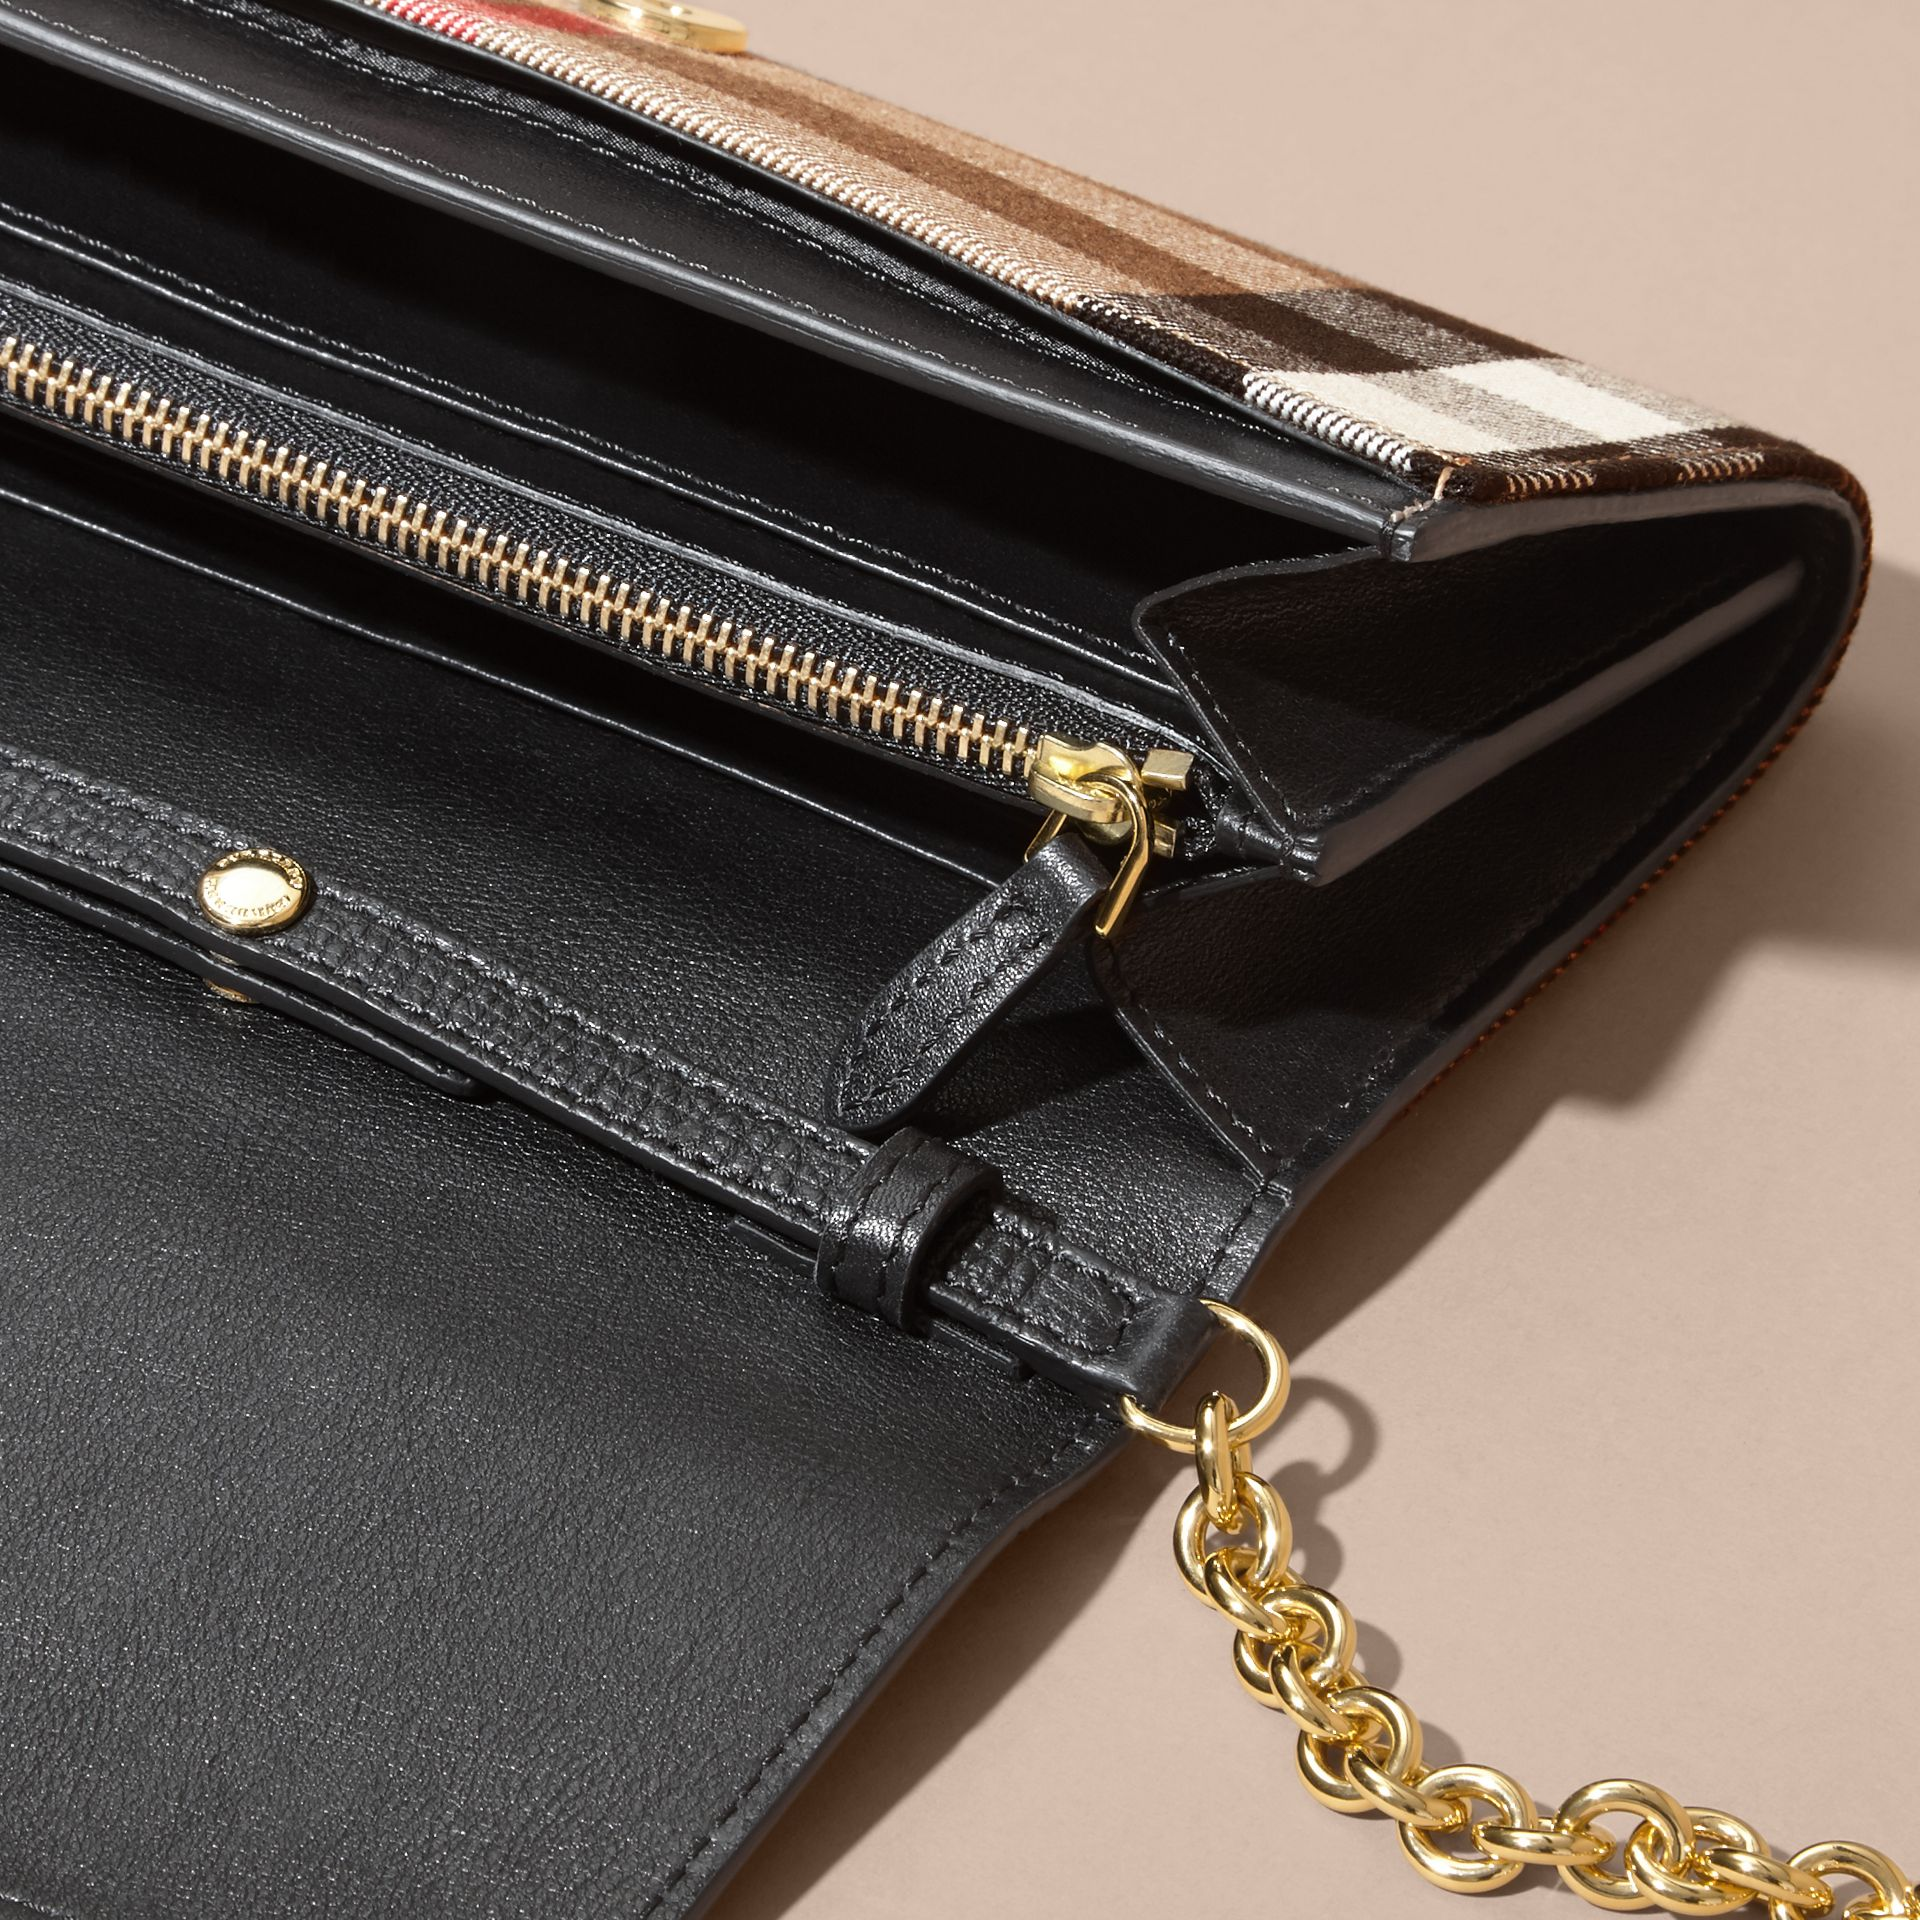 House Check and Leather Wallet with Chain in Black - Women | Burberry Australia - gallery image 6